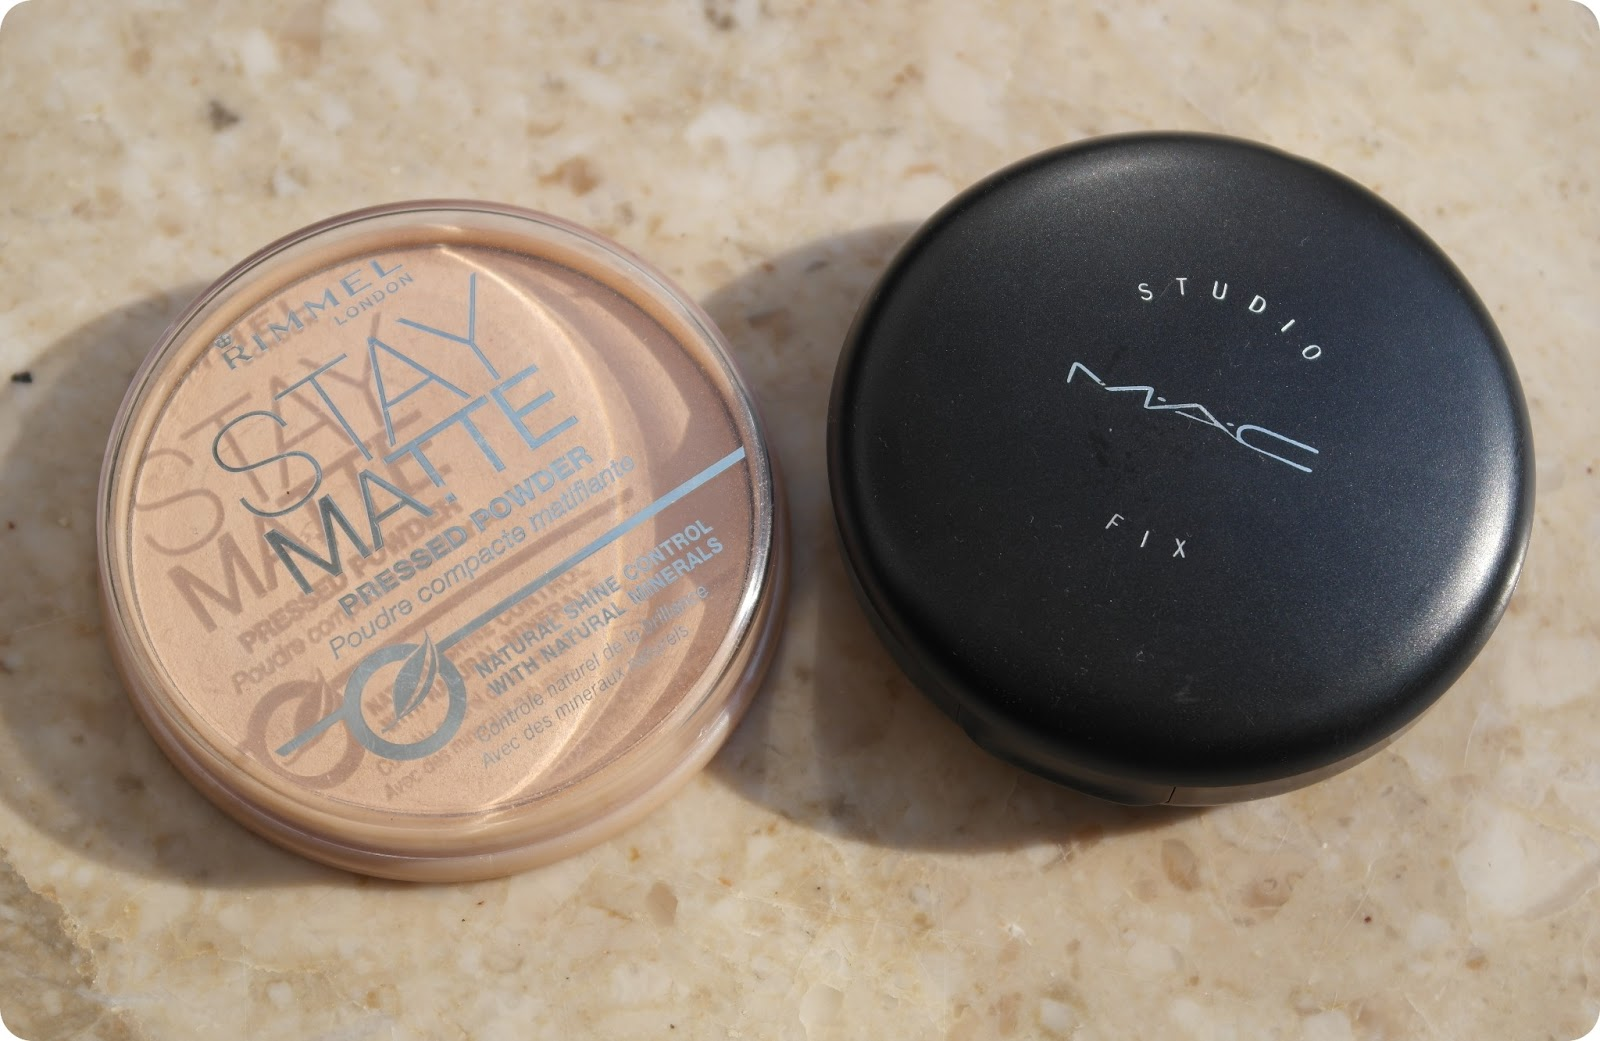 Rimmel Stay Matte Pressed Powder and MAC Studio Fix Powder Plus Foundation  dupe, review and comparison